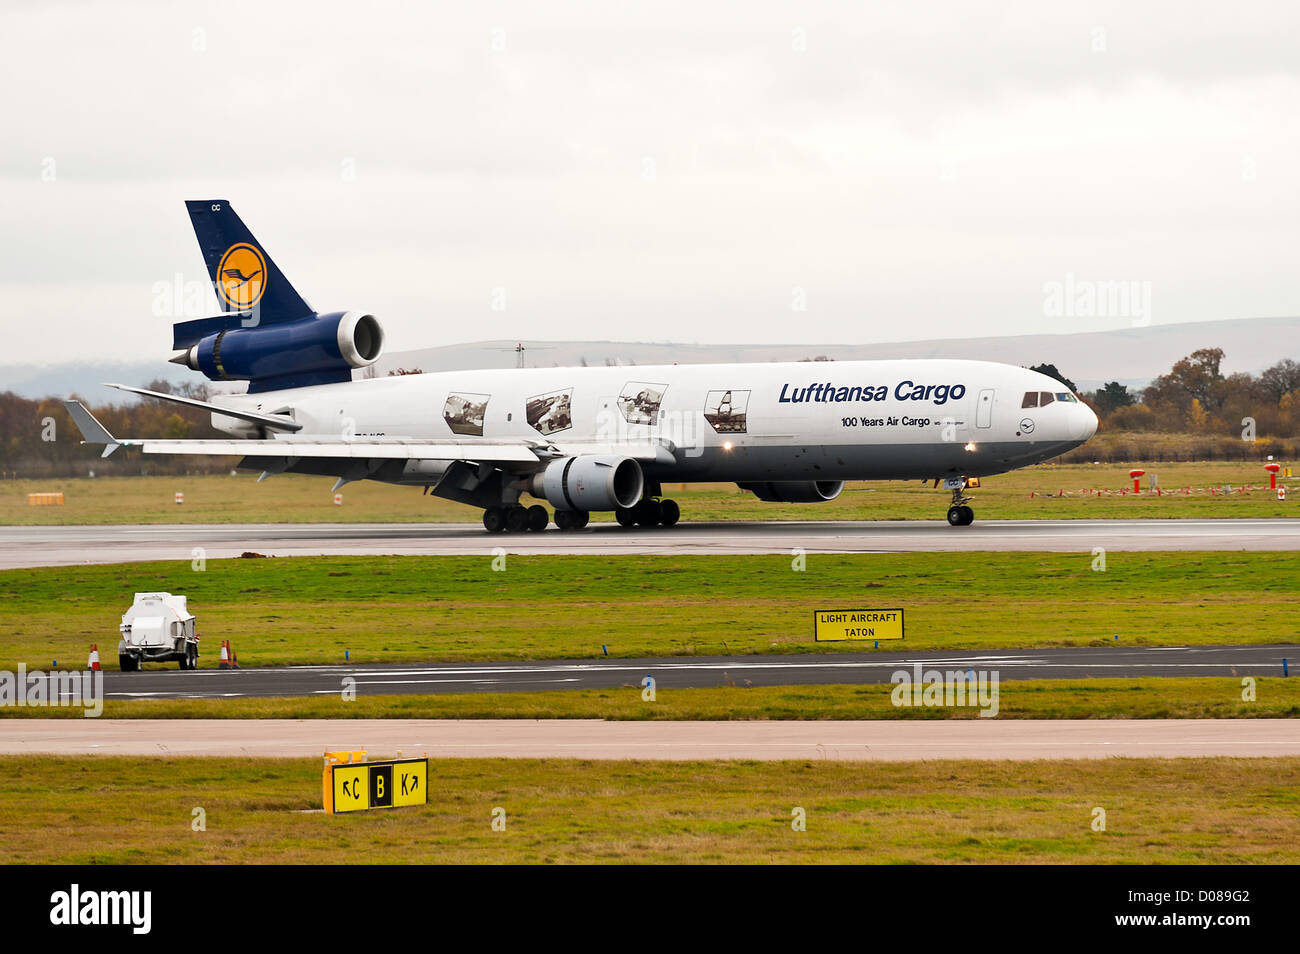 Lufthansa Cargo Airlines Mc Donnell Douglas MD-11F Freighter Airliner D-ALCC Landing at Manchester Airport England Stock Photo